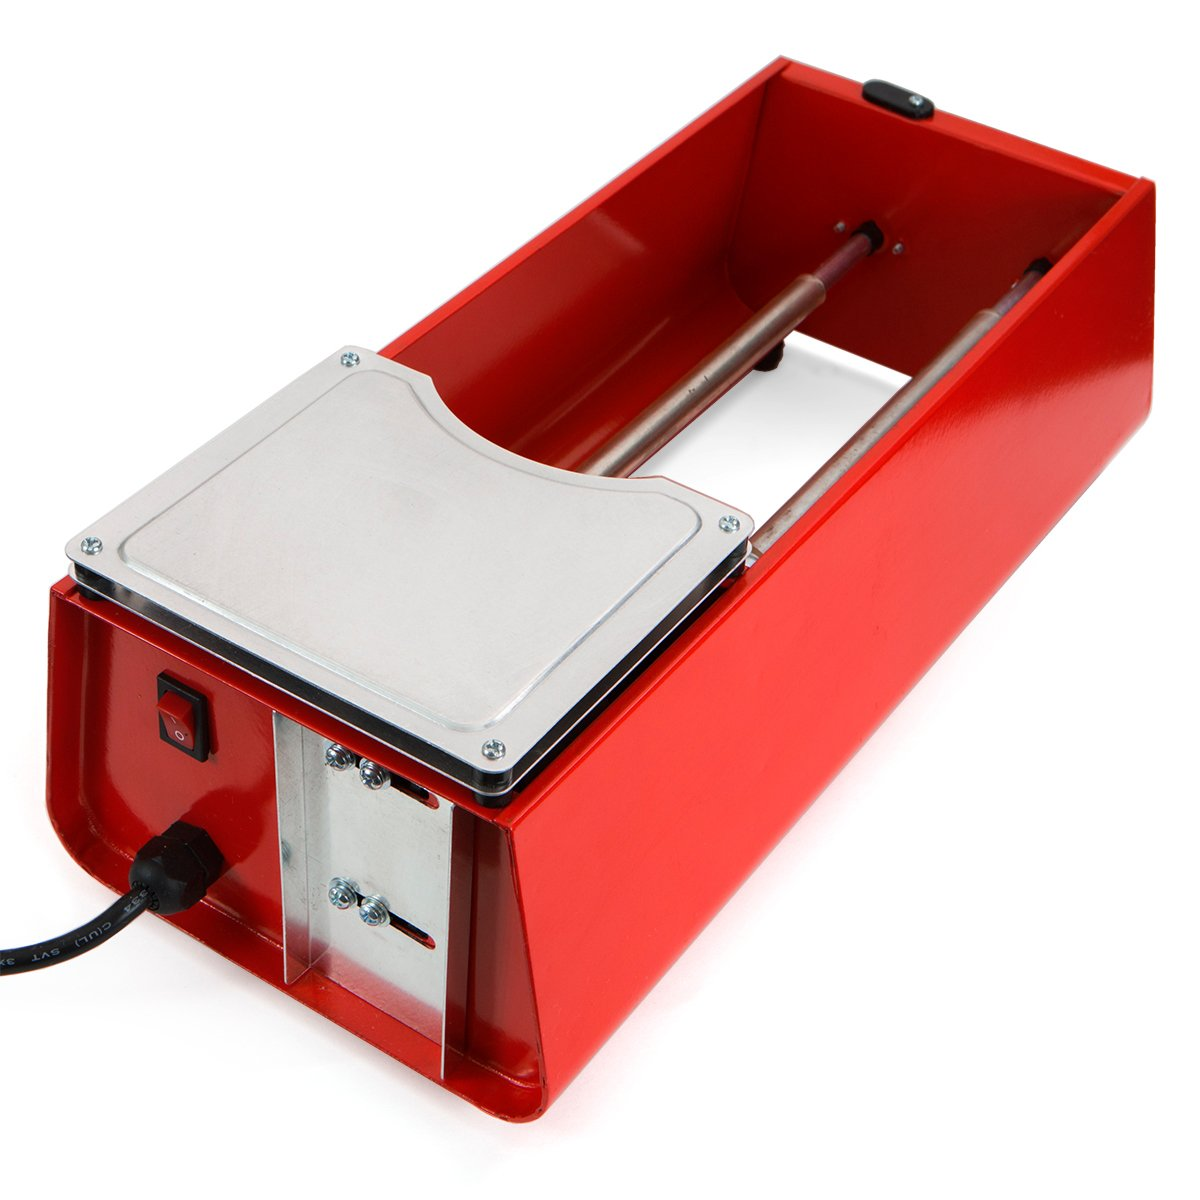 XtremepowerUS Dual Drum Rotary Jewelry Rock Tumbler Polisher for Stone Metal Jewelry 6LBS by XtremepowerUS (Image #2)